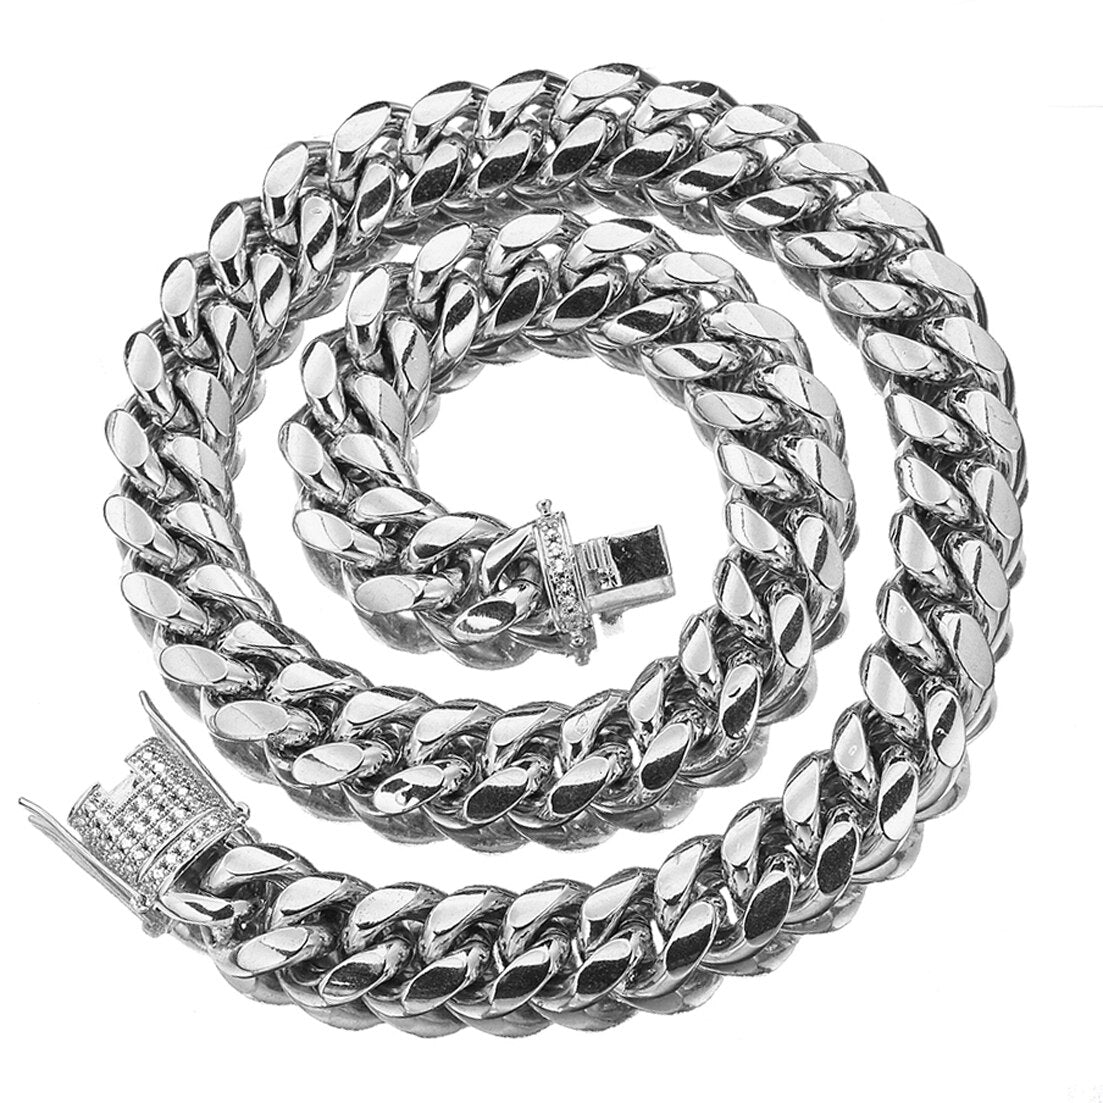 The Stainless Steel Cuban Link Chain - Iced Out Link - Mancessorize